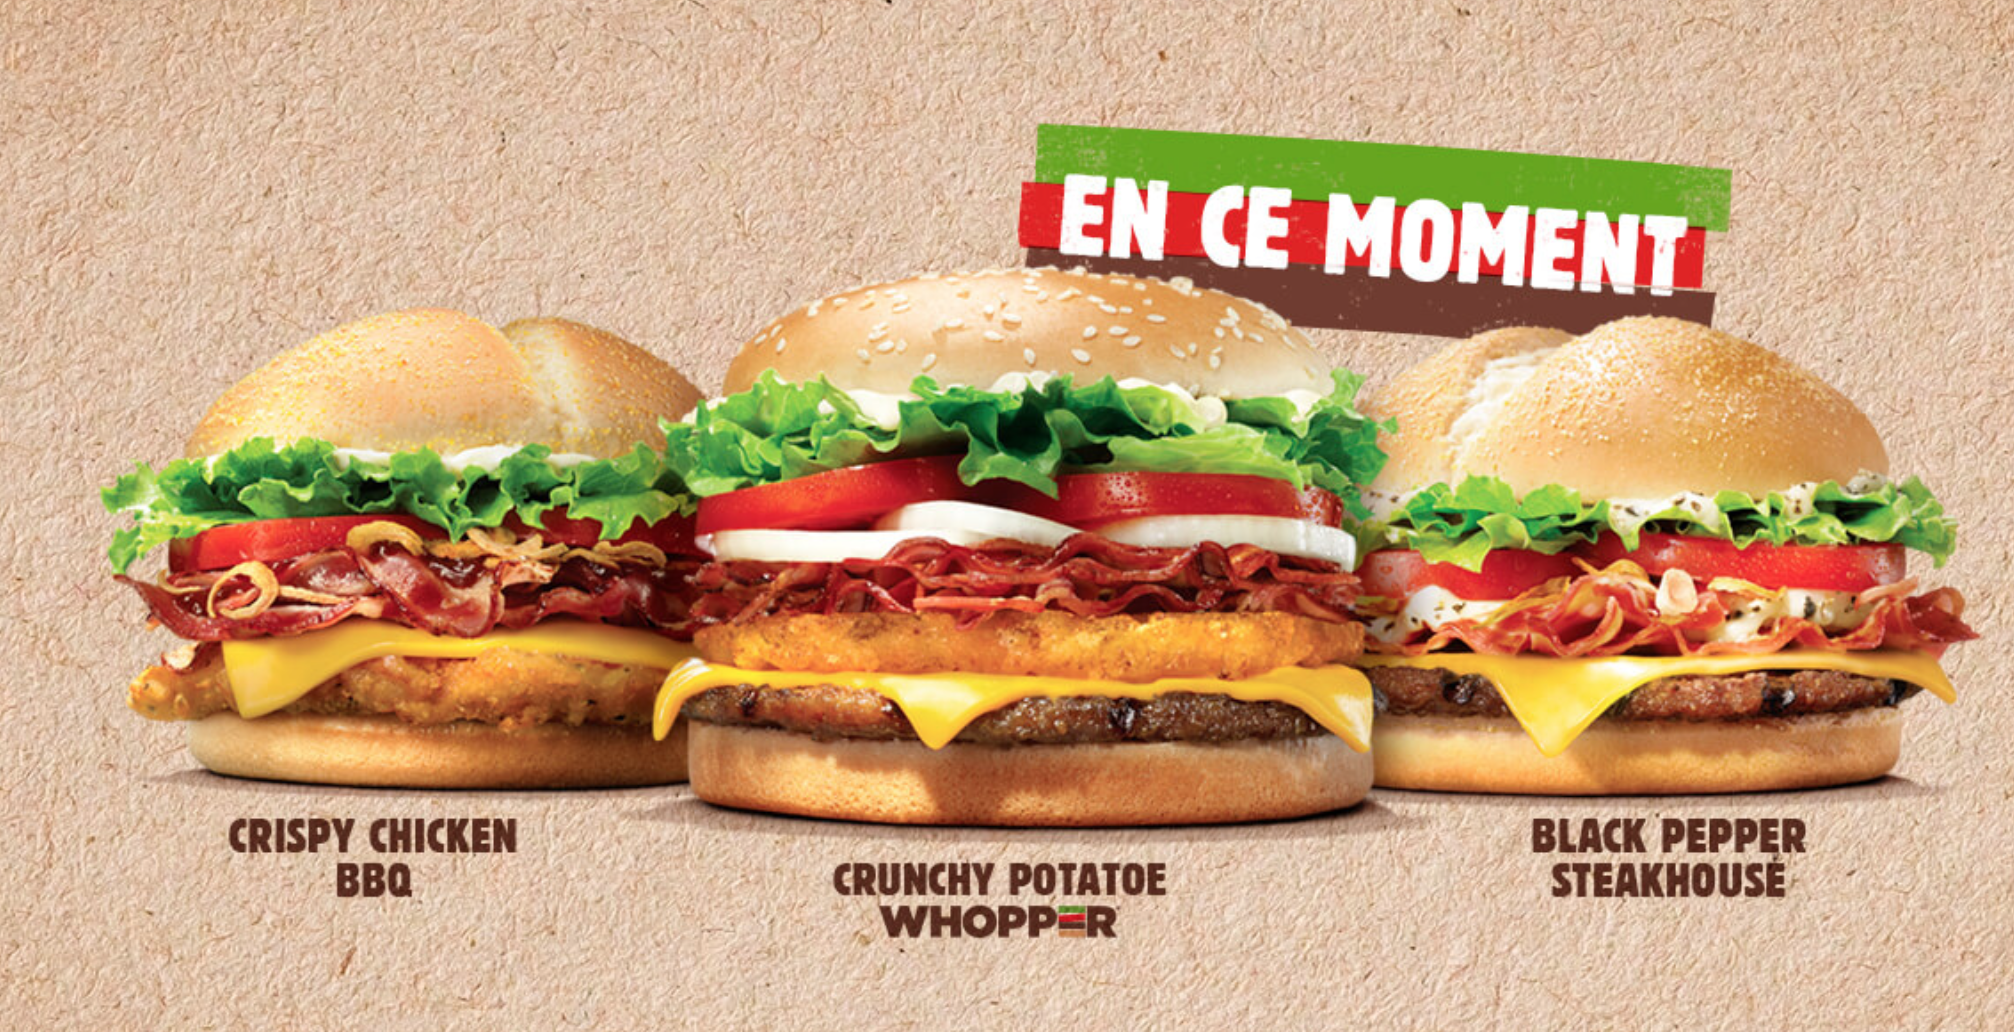 TEST : Le Crunchy Potato Whopper de Burger King